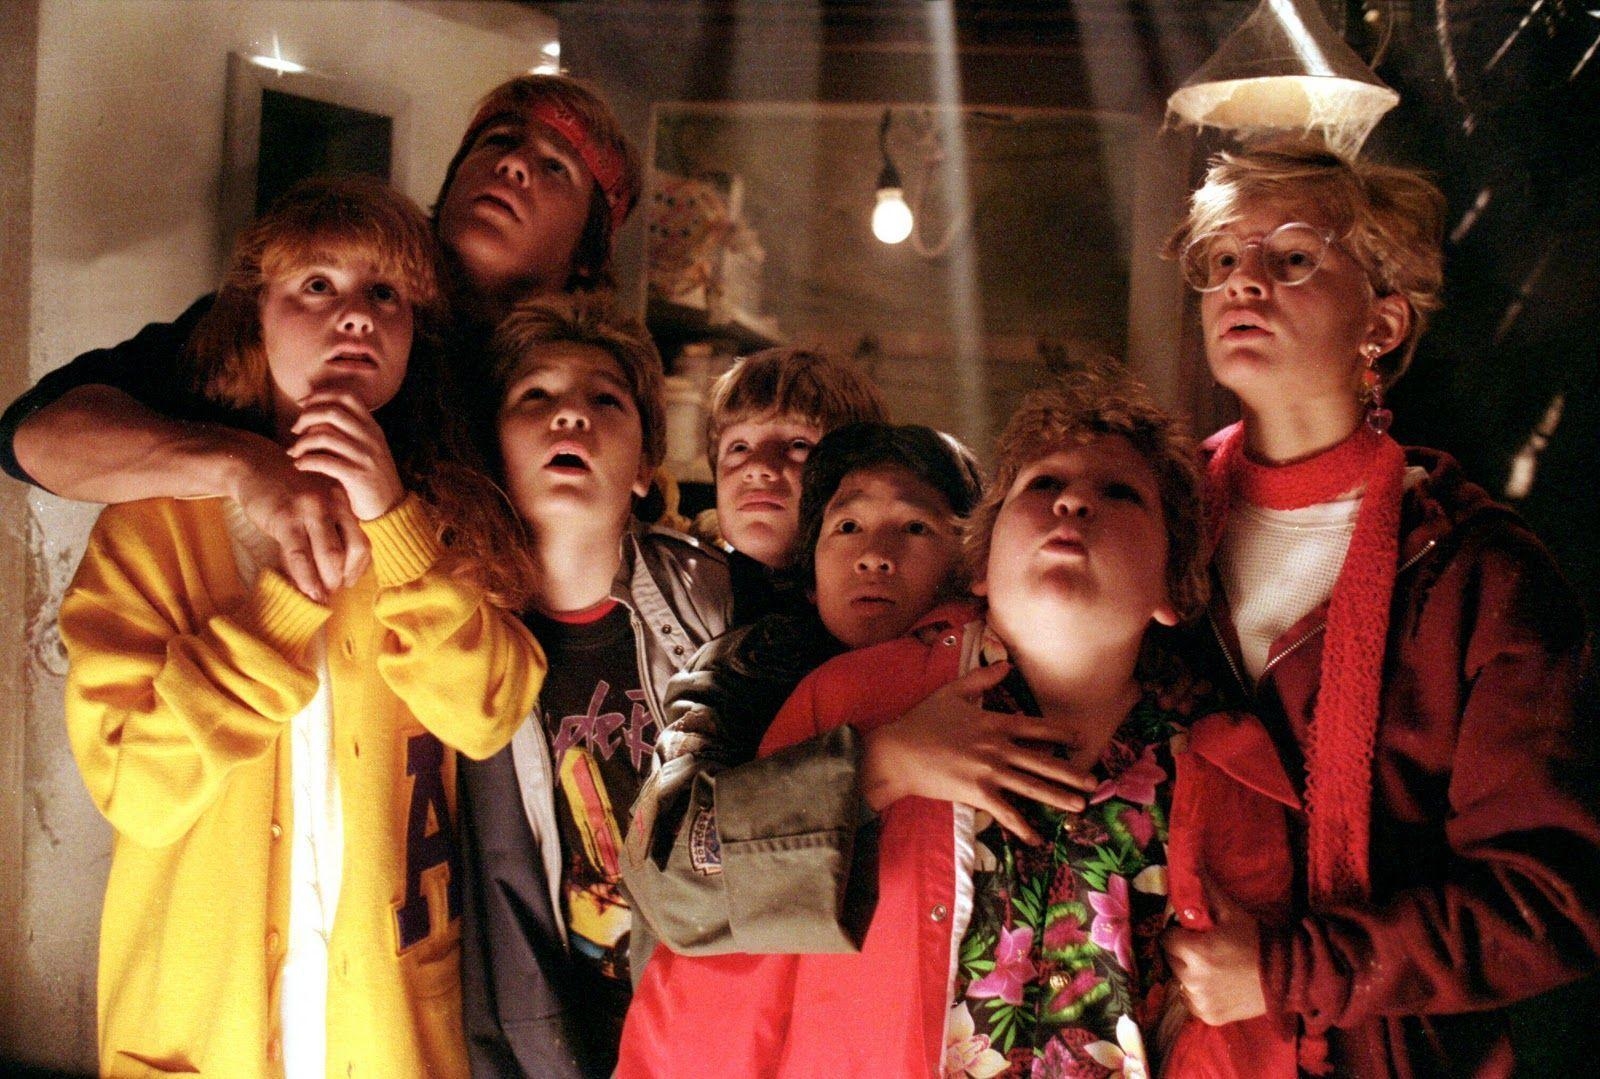 Image For > The Goonies Mouth Quotes